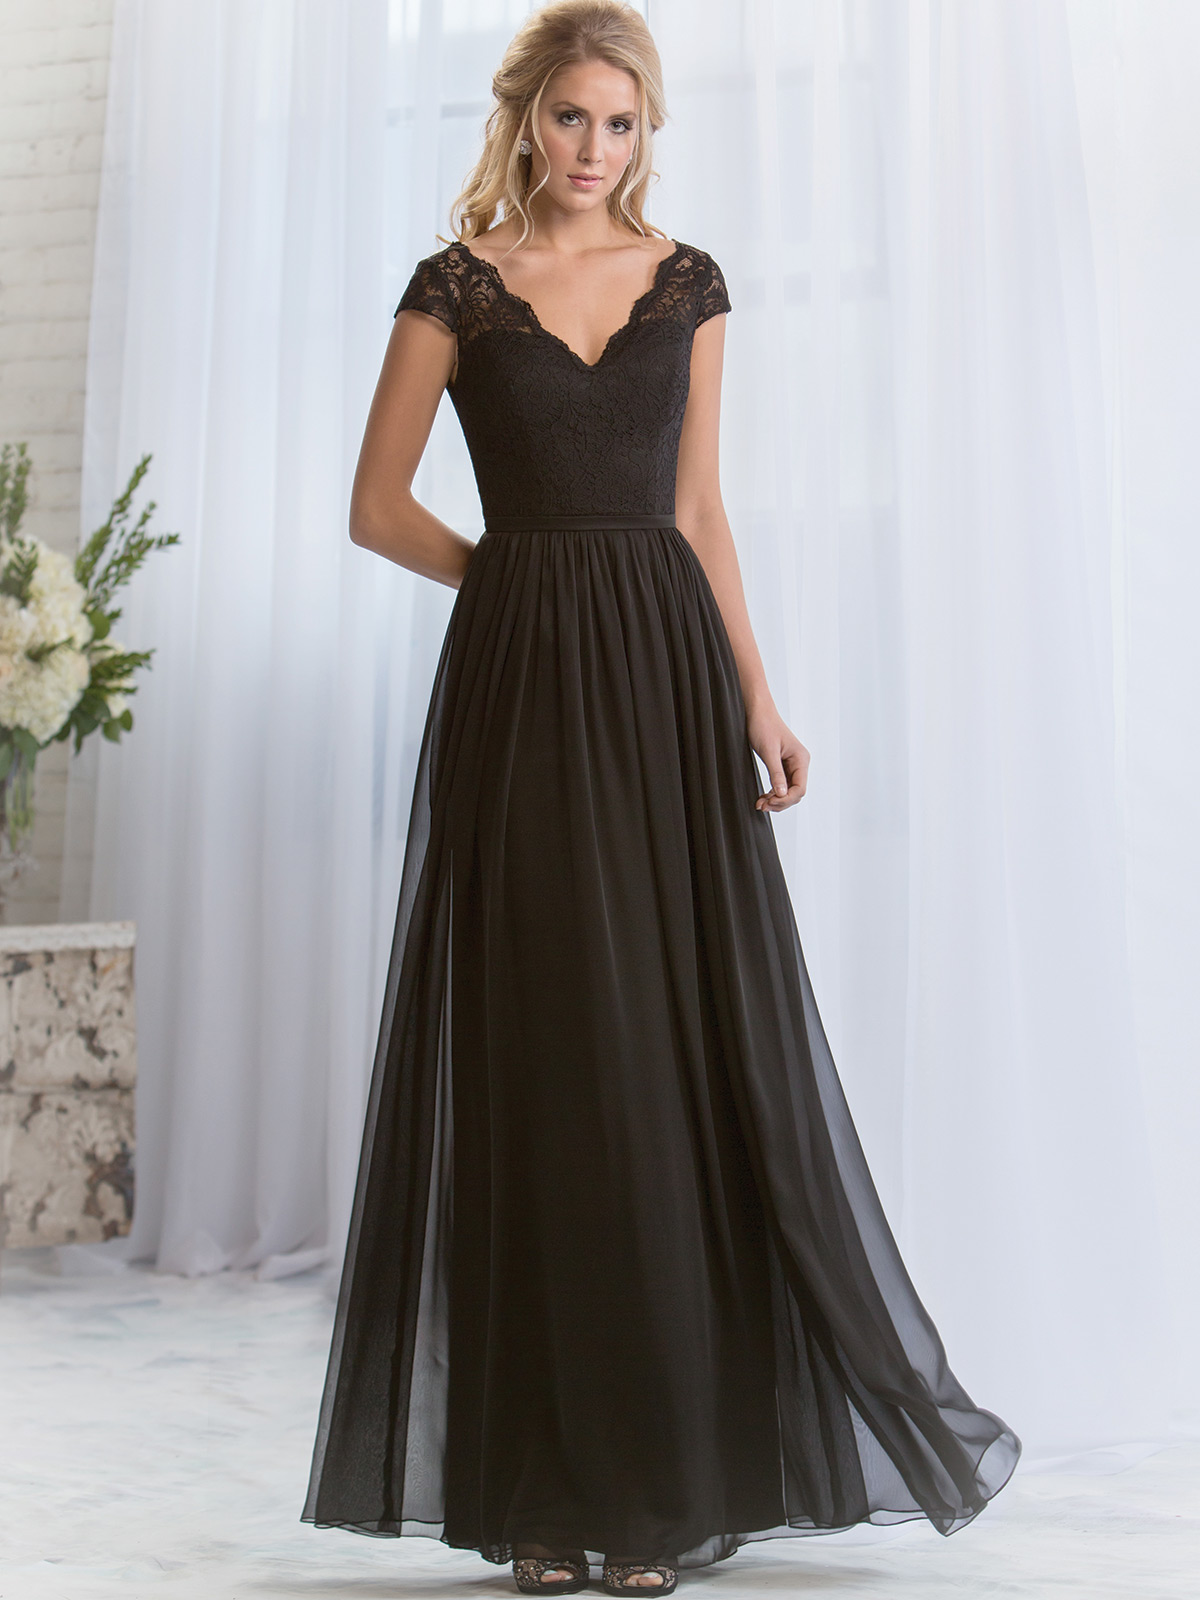 Belsoie Bridesmaid Dress L164068: DimitraDesigns.com